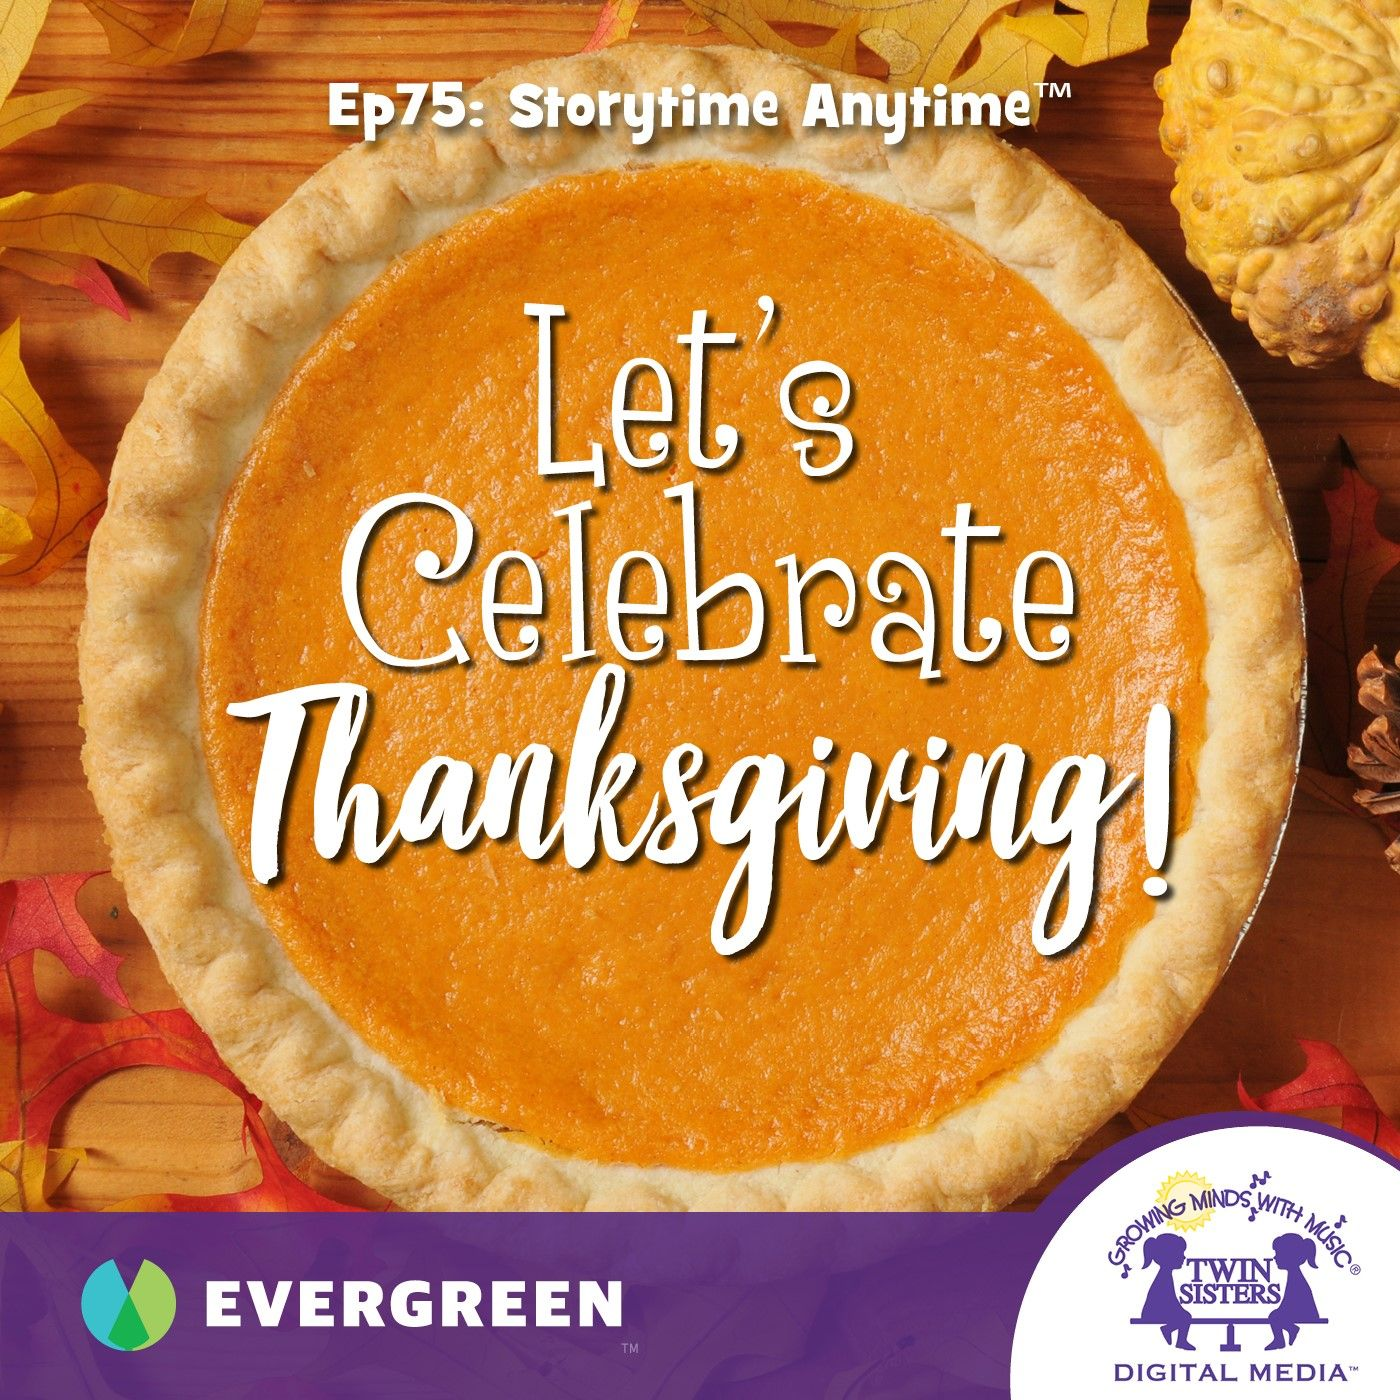 Let's Celebrate Thanksgiving!